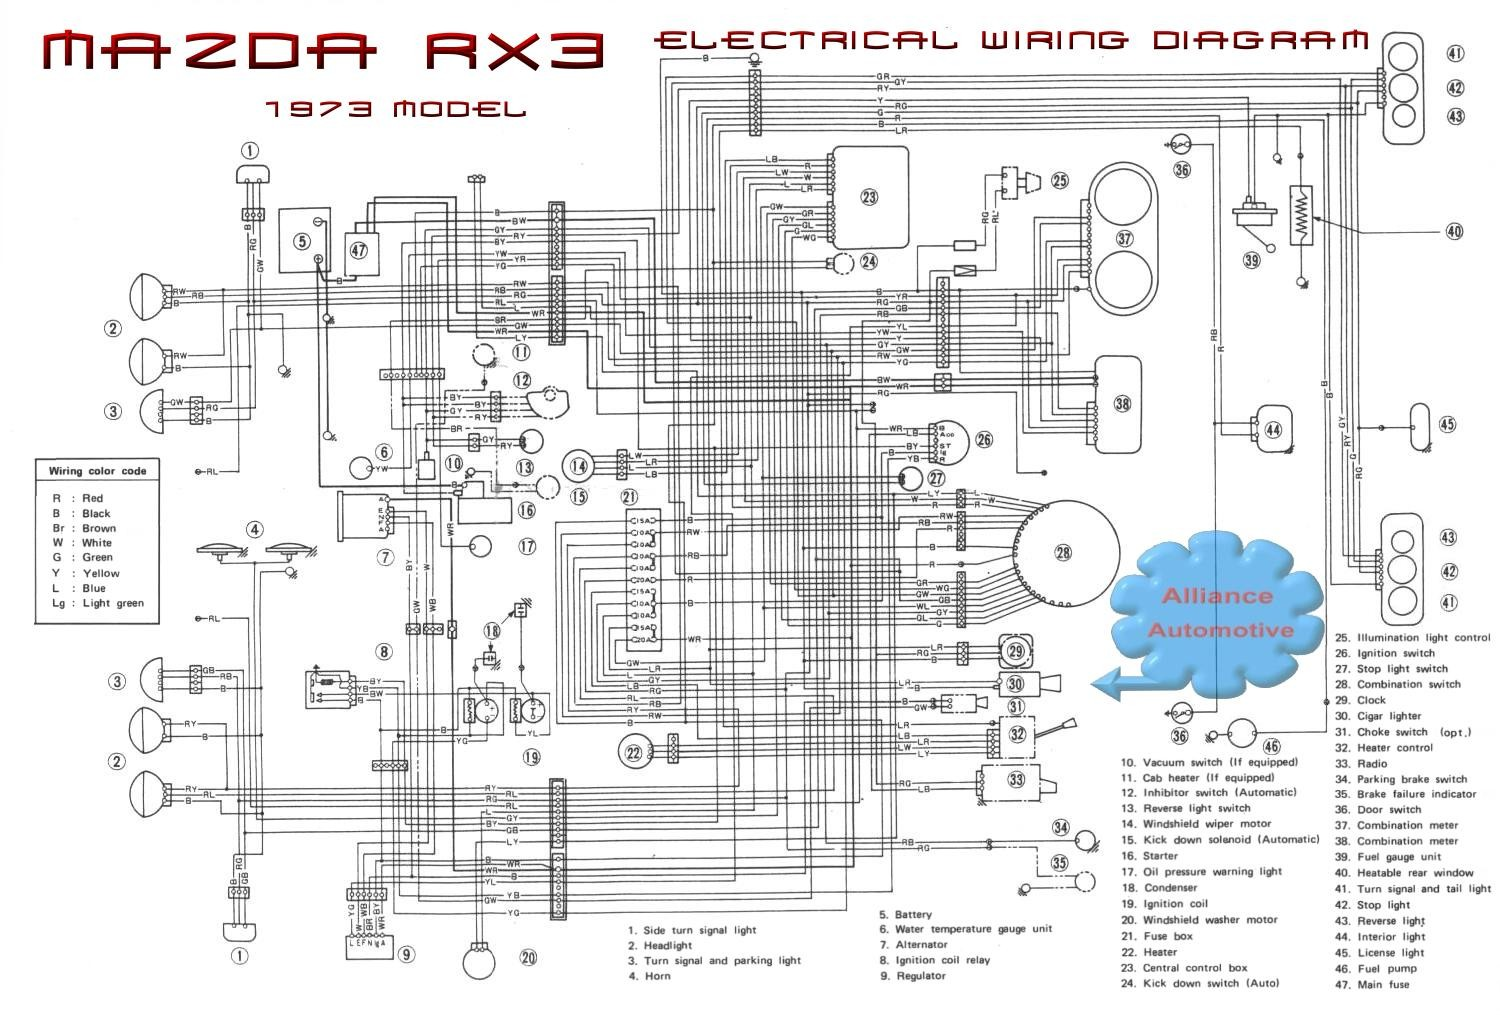 Mazda 3 Wiring Diagram Pdf Library Harley Davidson Harness Wp105 How Do I Fix My Electrical Problems Rh Oocities Org Accessories 2005 Awesome